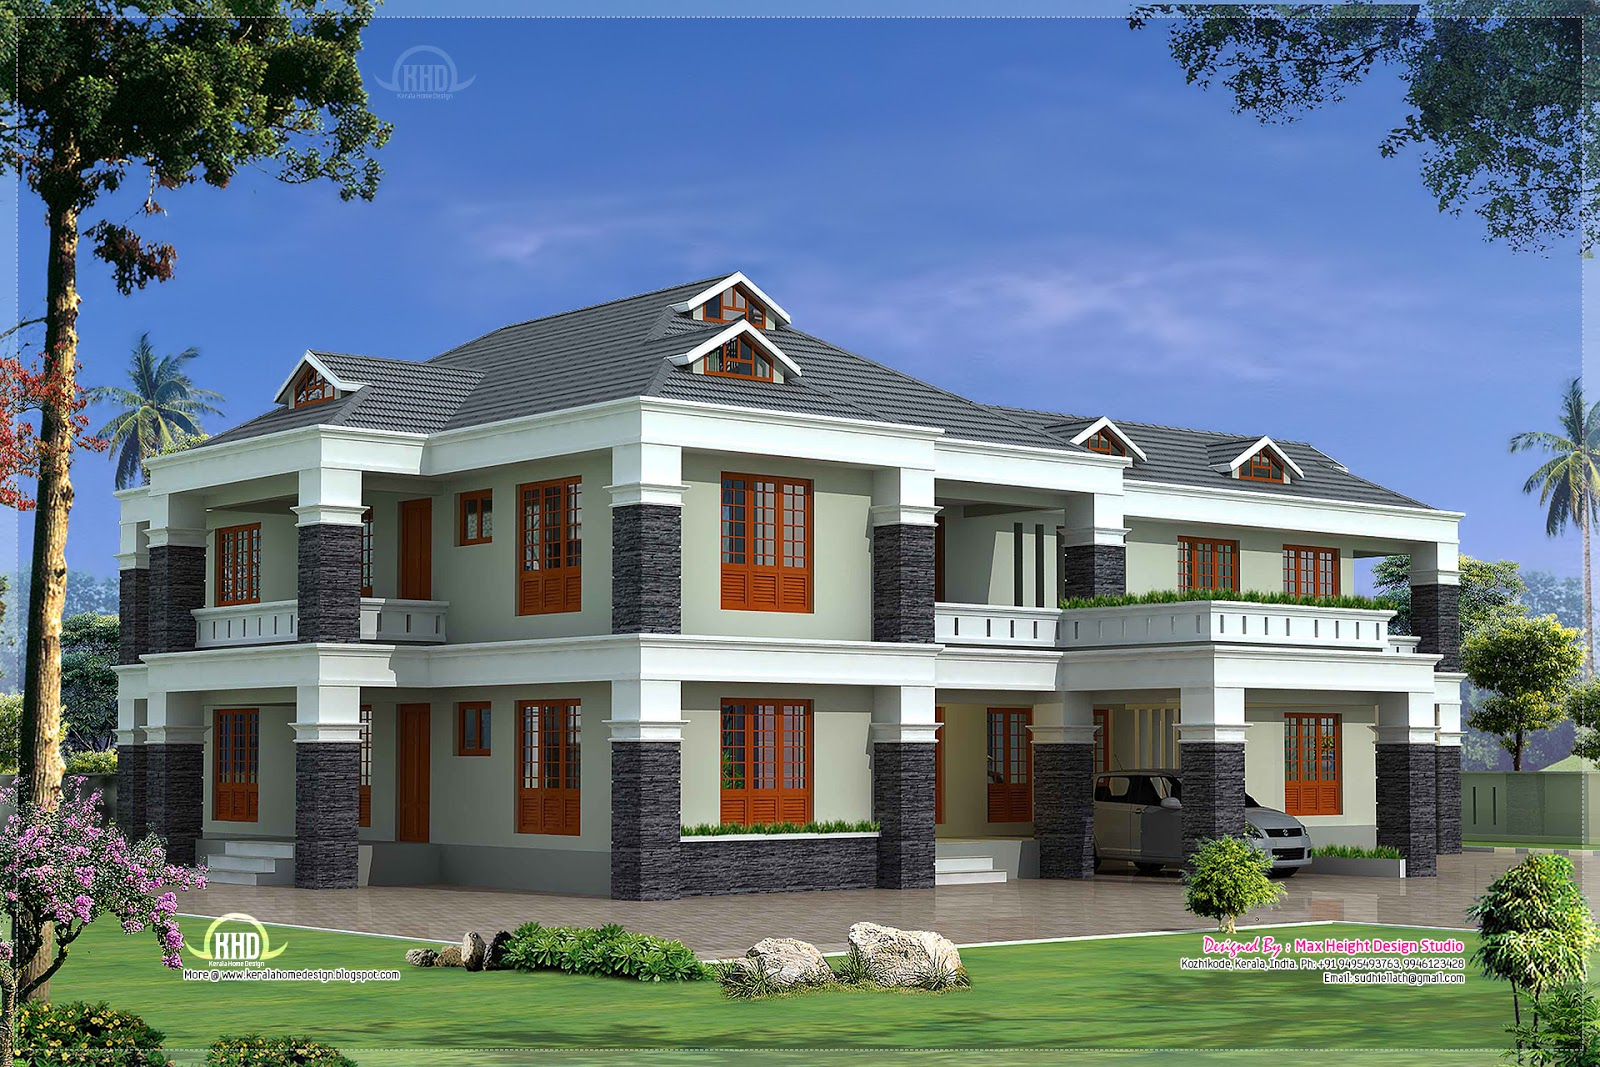 Luxury house plans 4000 square feet - Home design and style